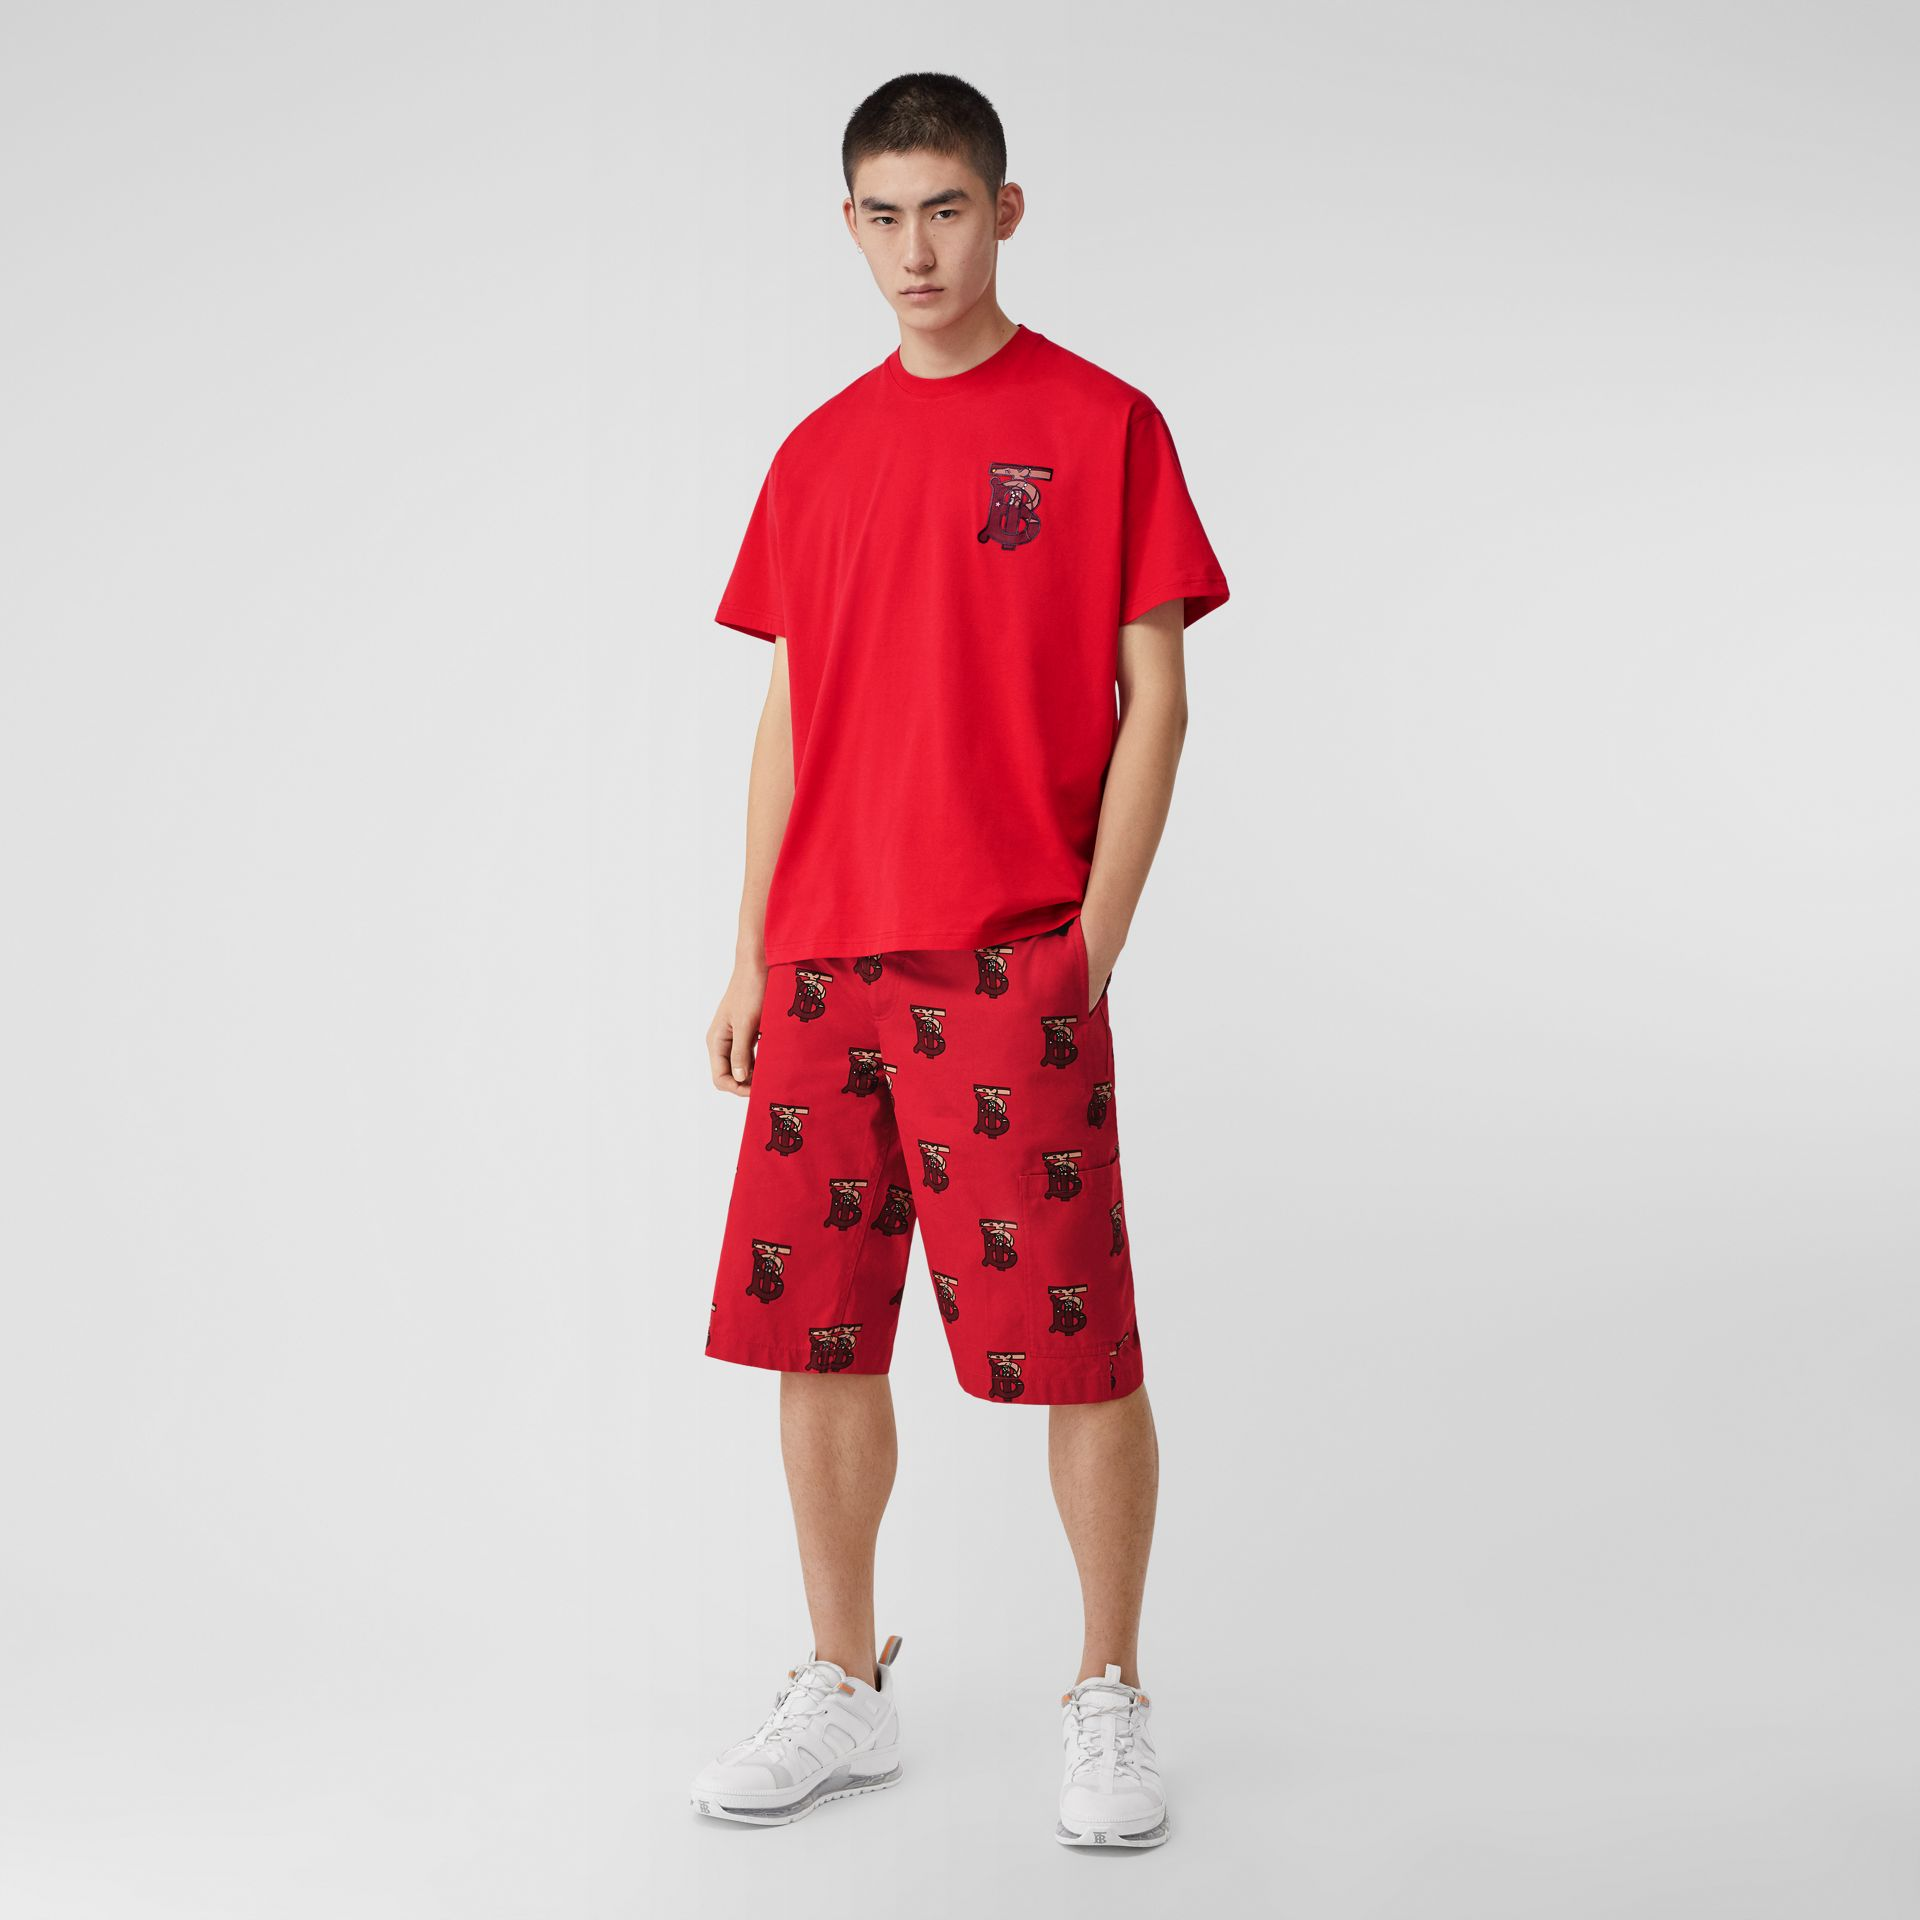 Monogram Motif Cotton Oversized T-shirt in Racing Red - Men | Burberry United Kingdom - gallery image 0